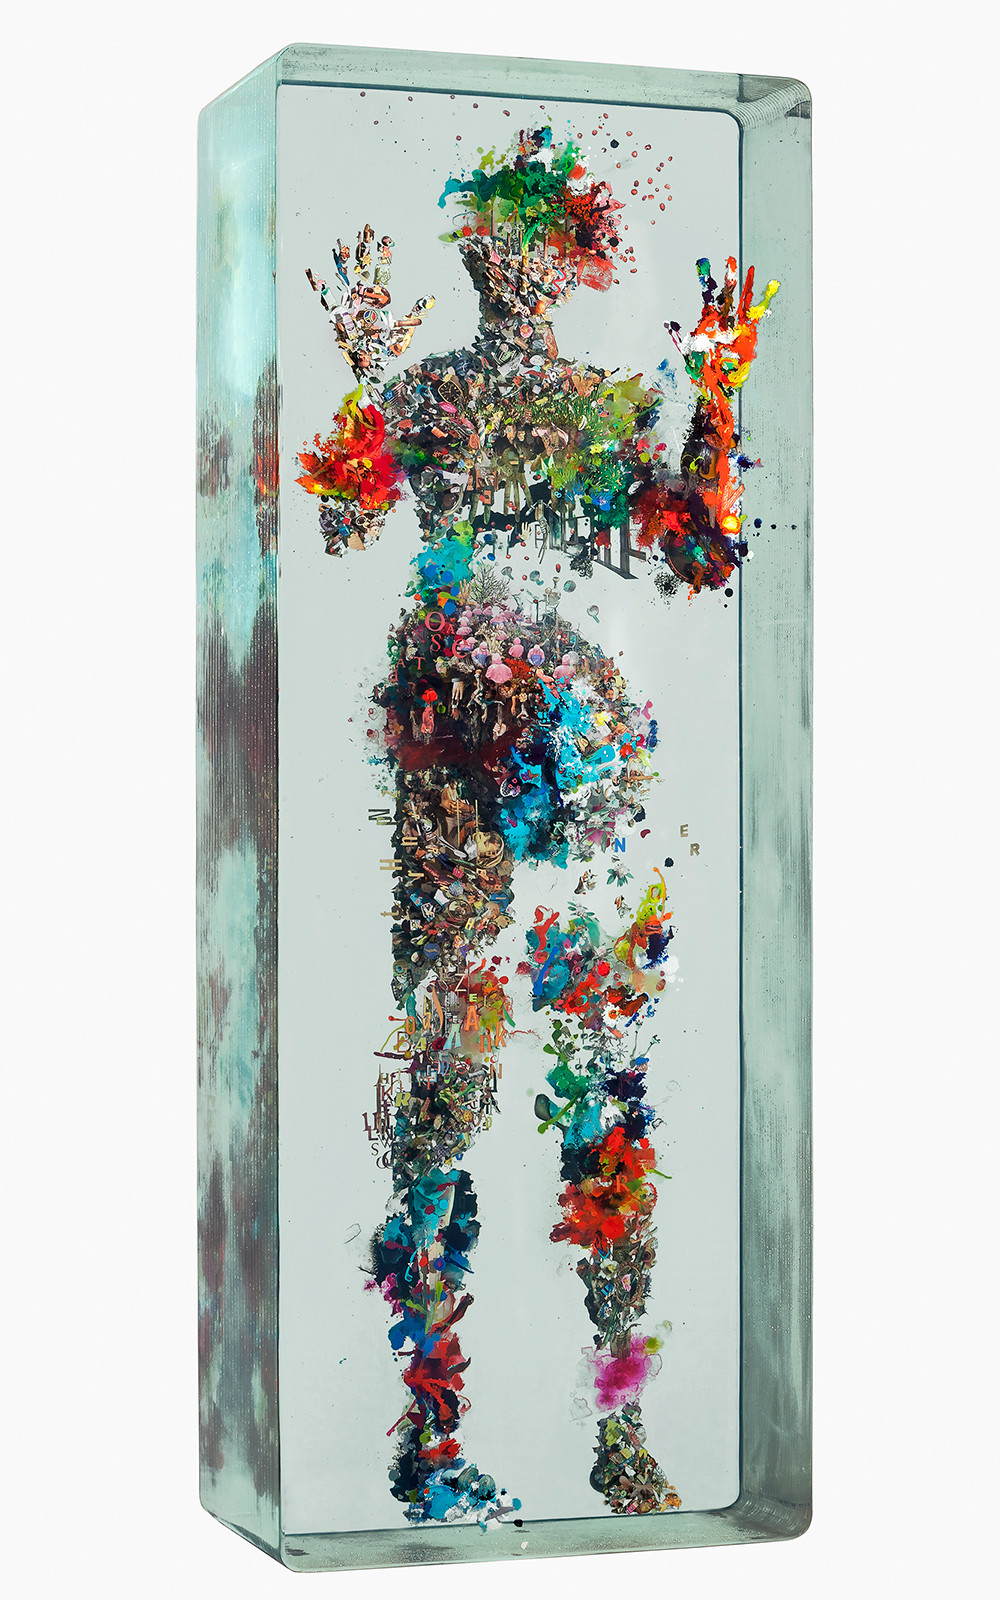 sculpture, classical, modern, art, artist, howl magazine, sculptors you should know, new york, art, fine art, collage, dustin yellin, pioneer works, redhook brooklyn, yellin, 3d collage, glass, layered glass, dystopian, bosch